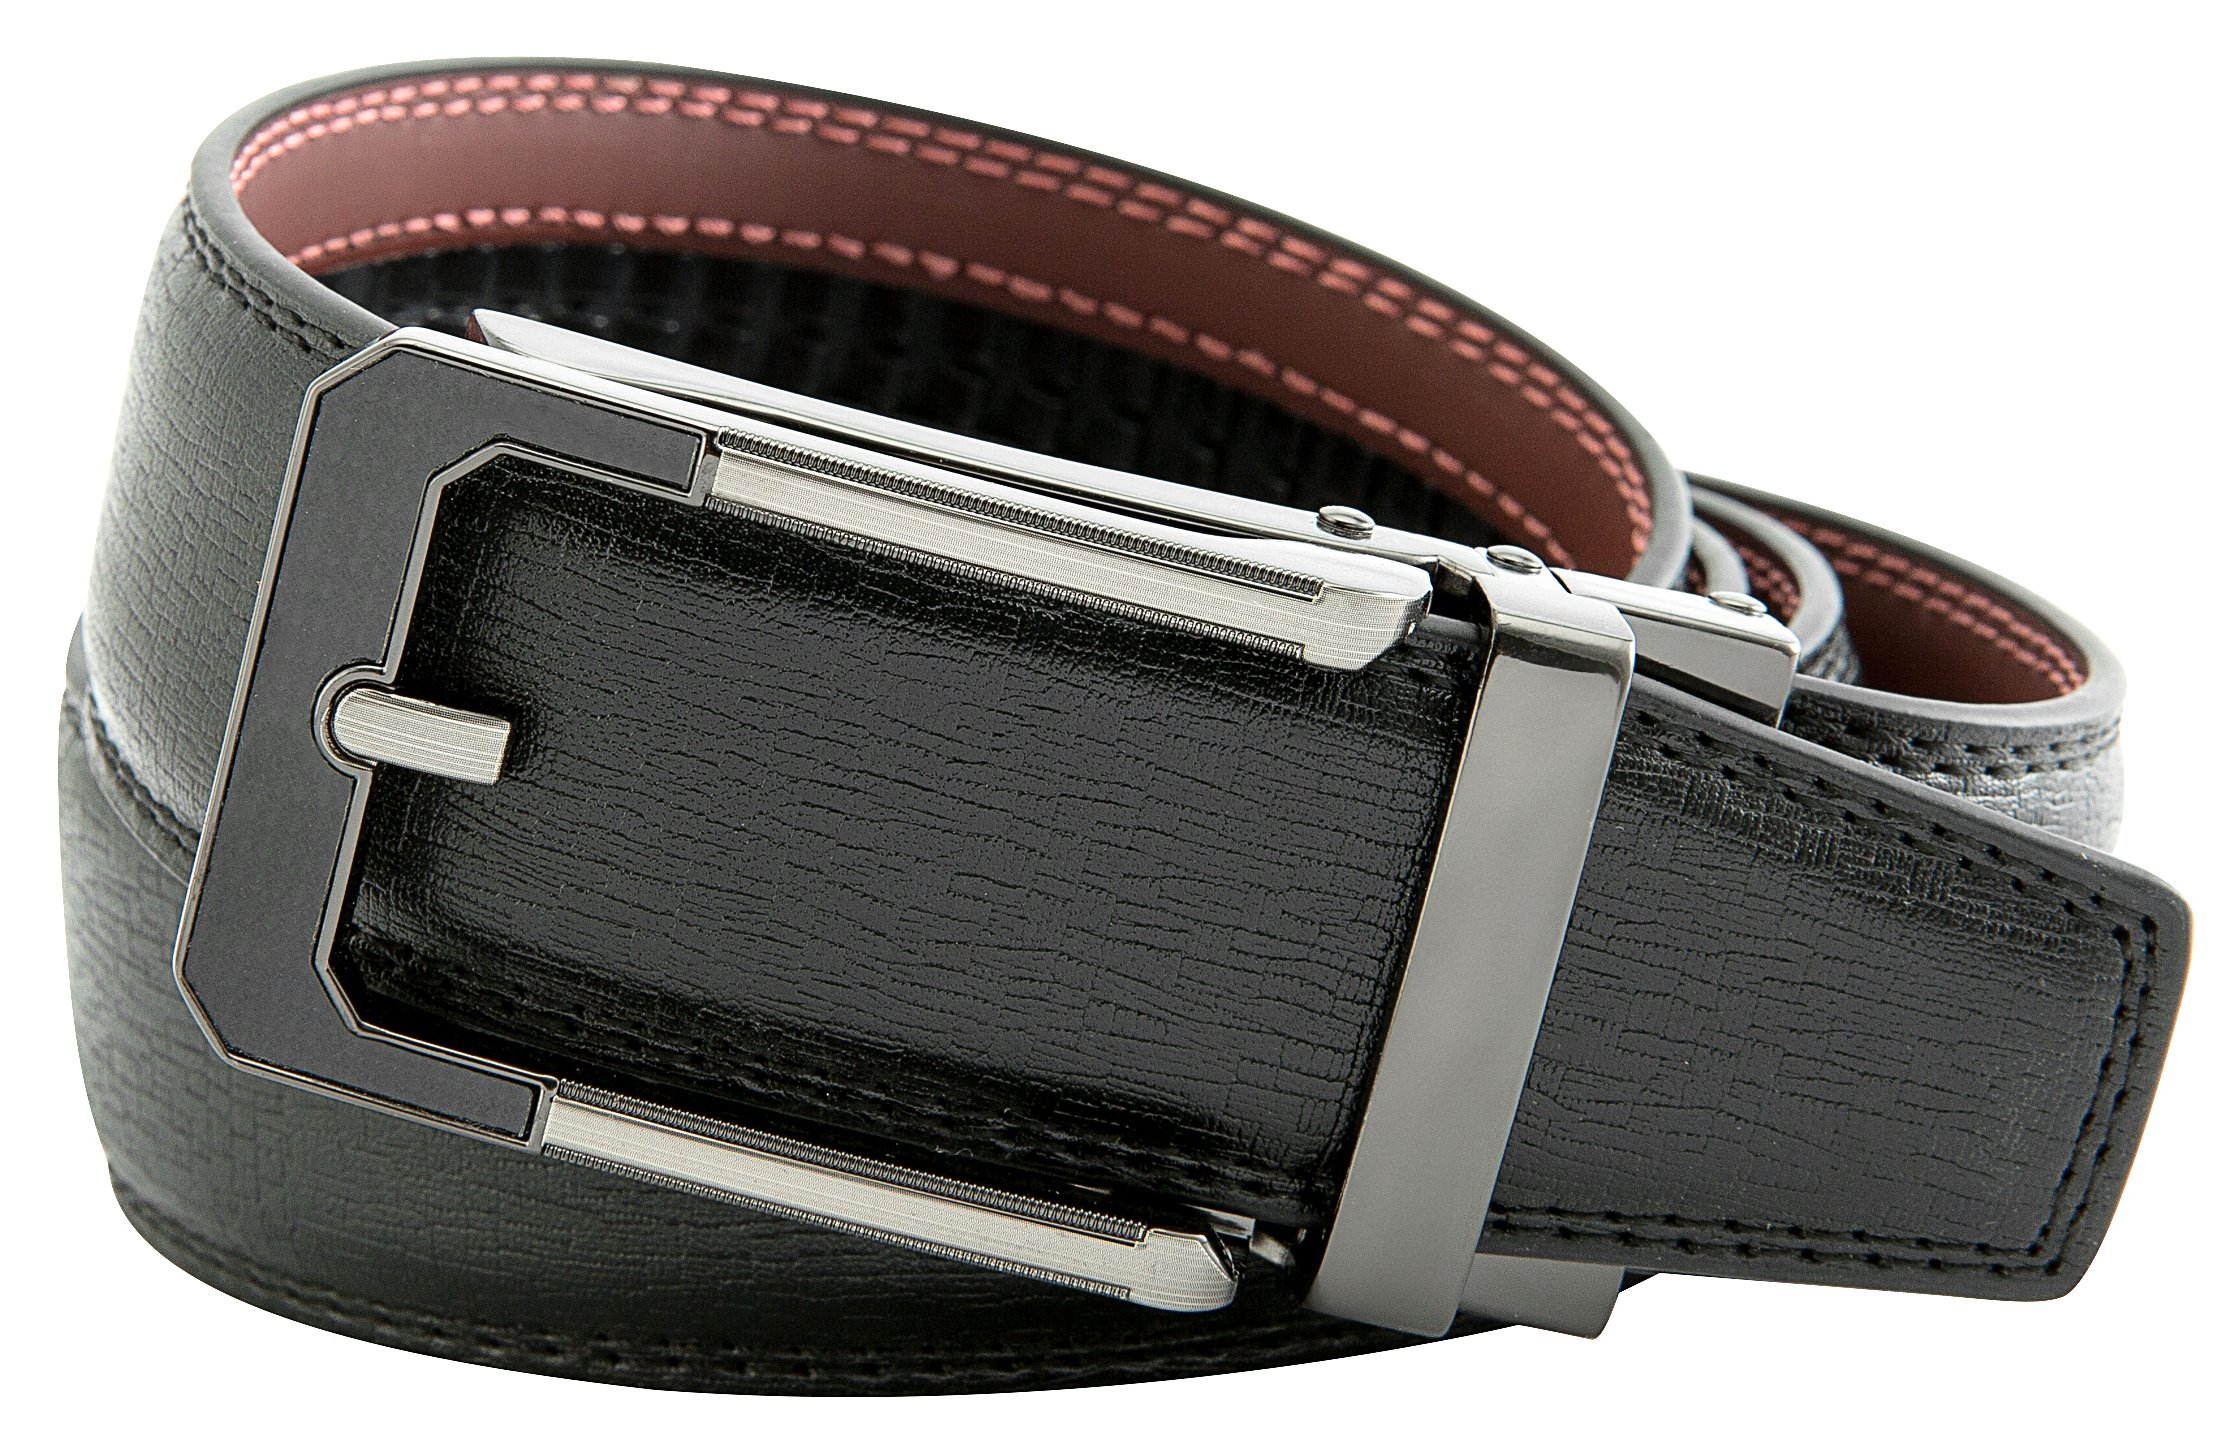 Men's Black Ratchet Belt - Black and Silver Open Style - by J. Dapper by J. Dapper (Image #3)